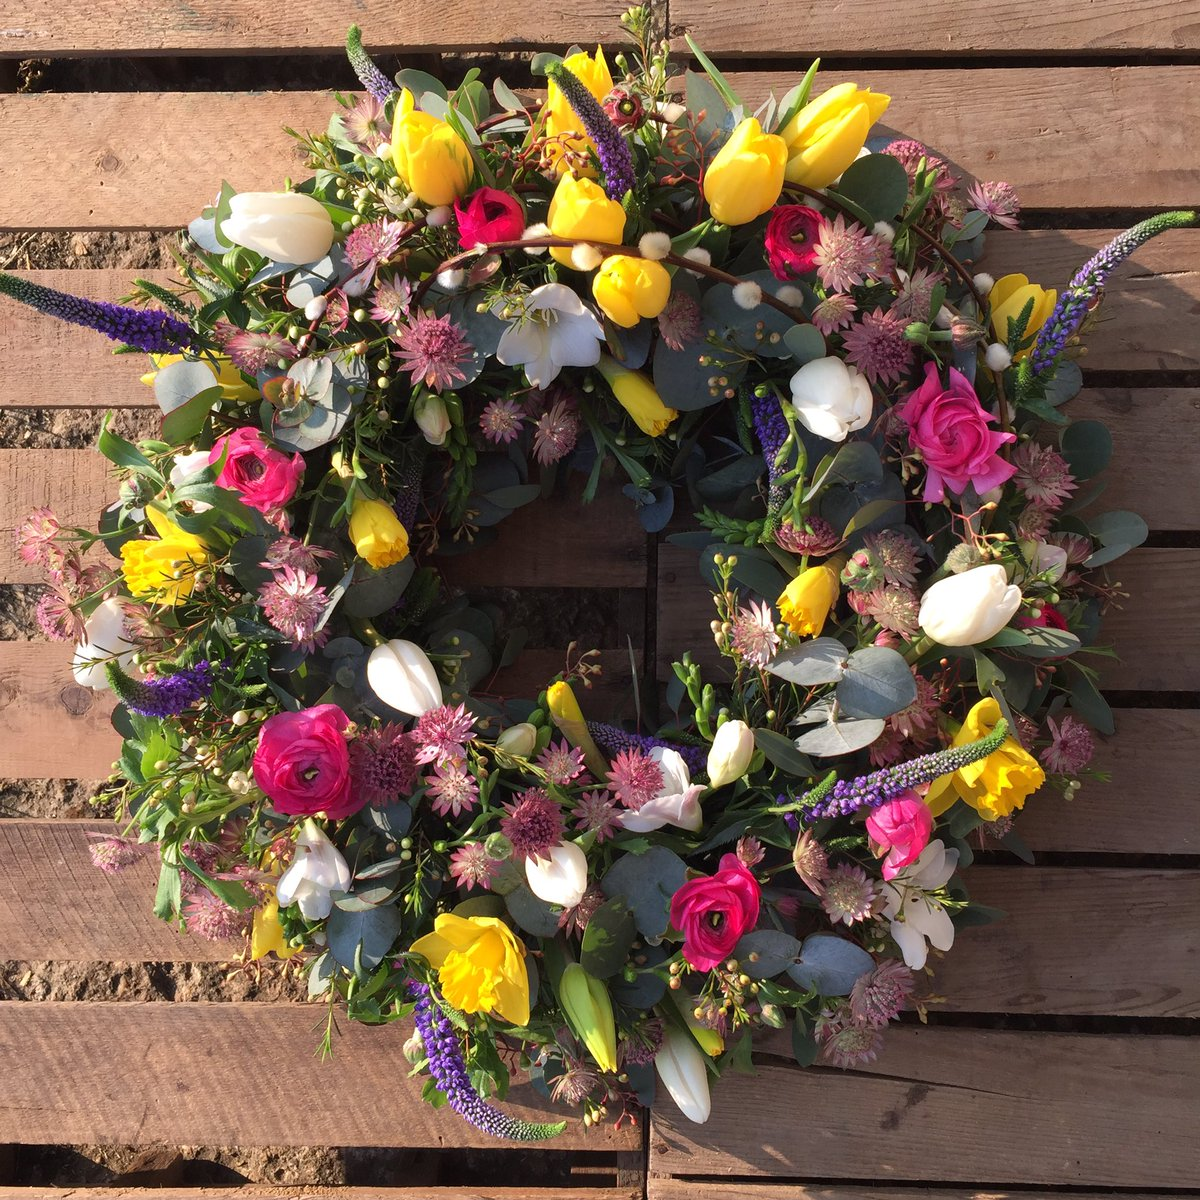 Hannah rose flowers hroseflowers twitter bright and colourful was the order of the day for these funeral flowers for my nan yesterday tribute floristpicitter4b5piu73gj izmirmasajfo Images